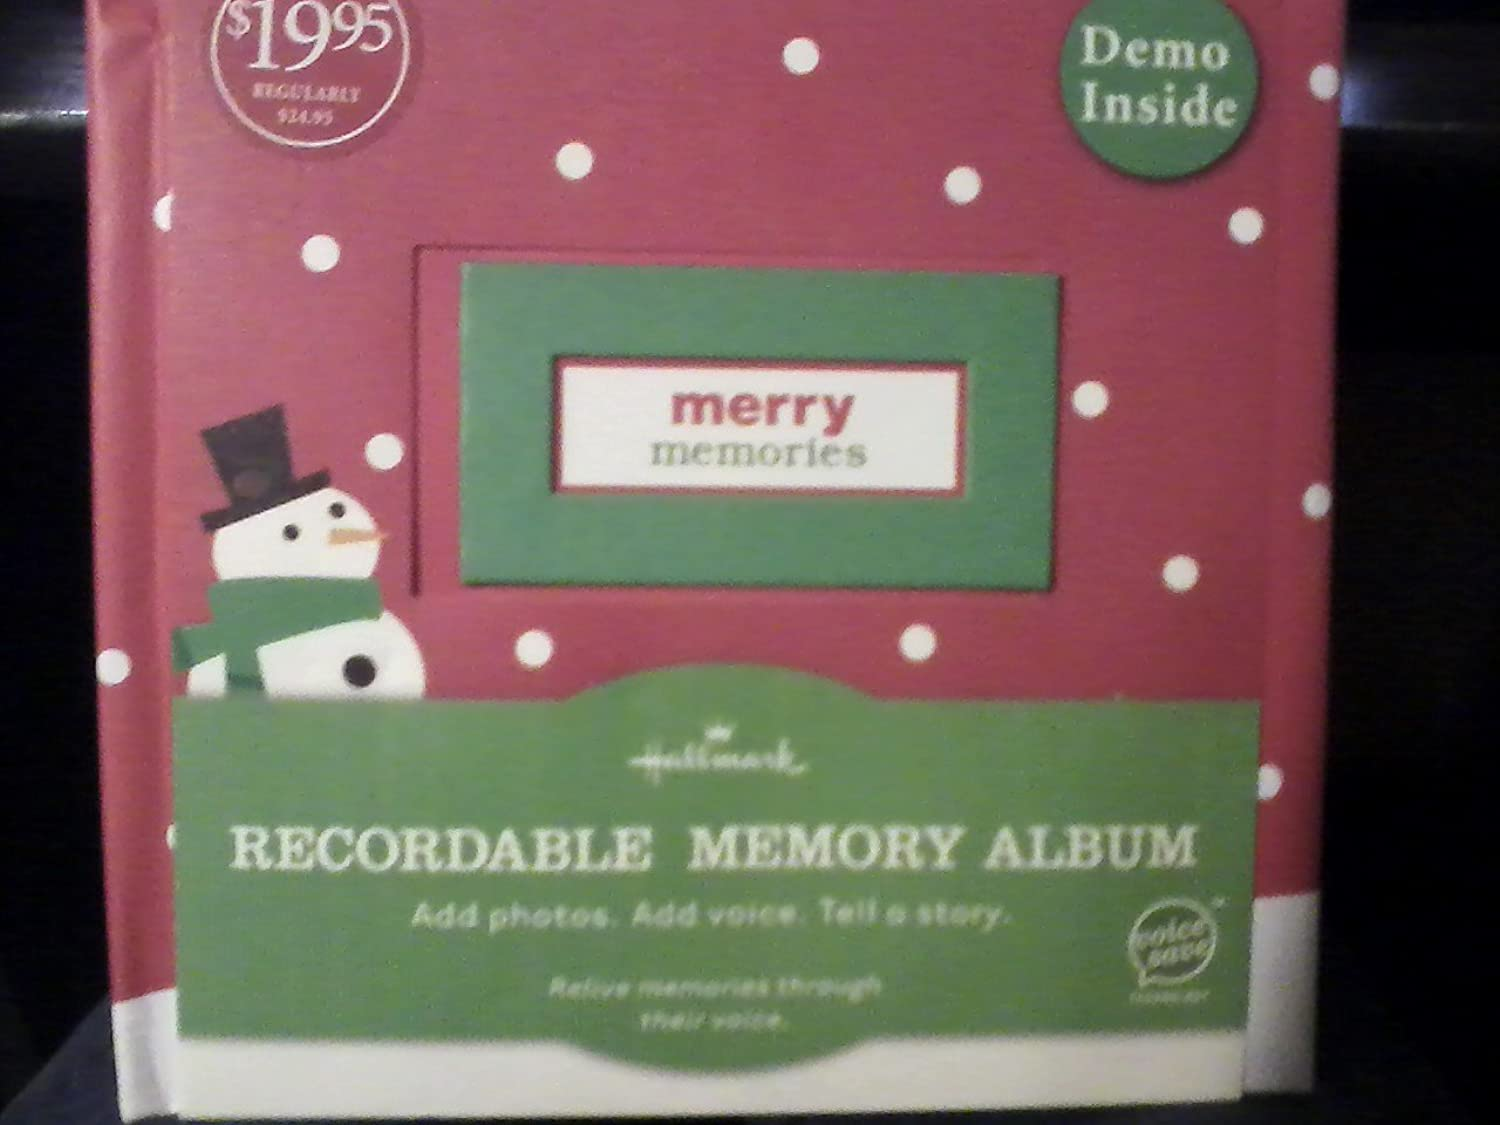 XOX7000 Very Merry Moments Hallmark Recordable Memory Album